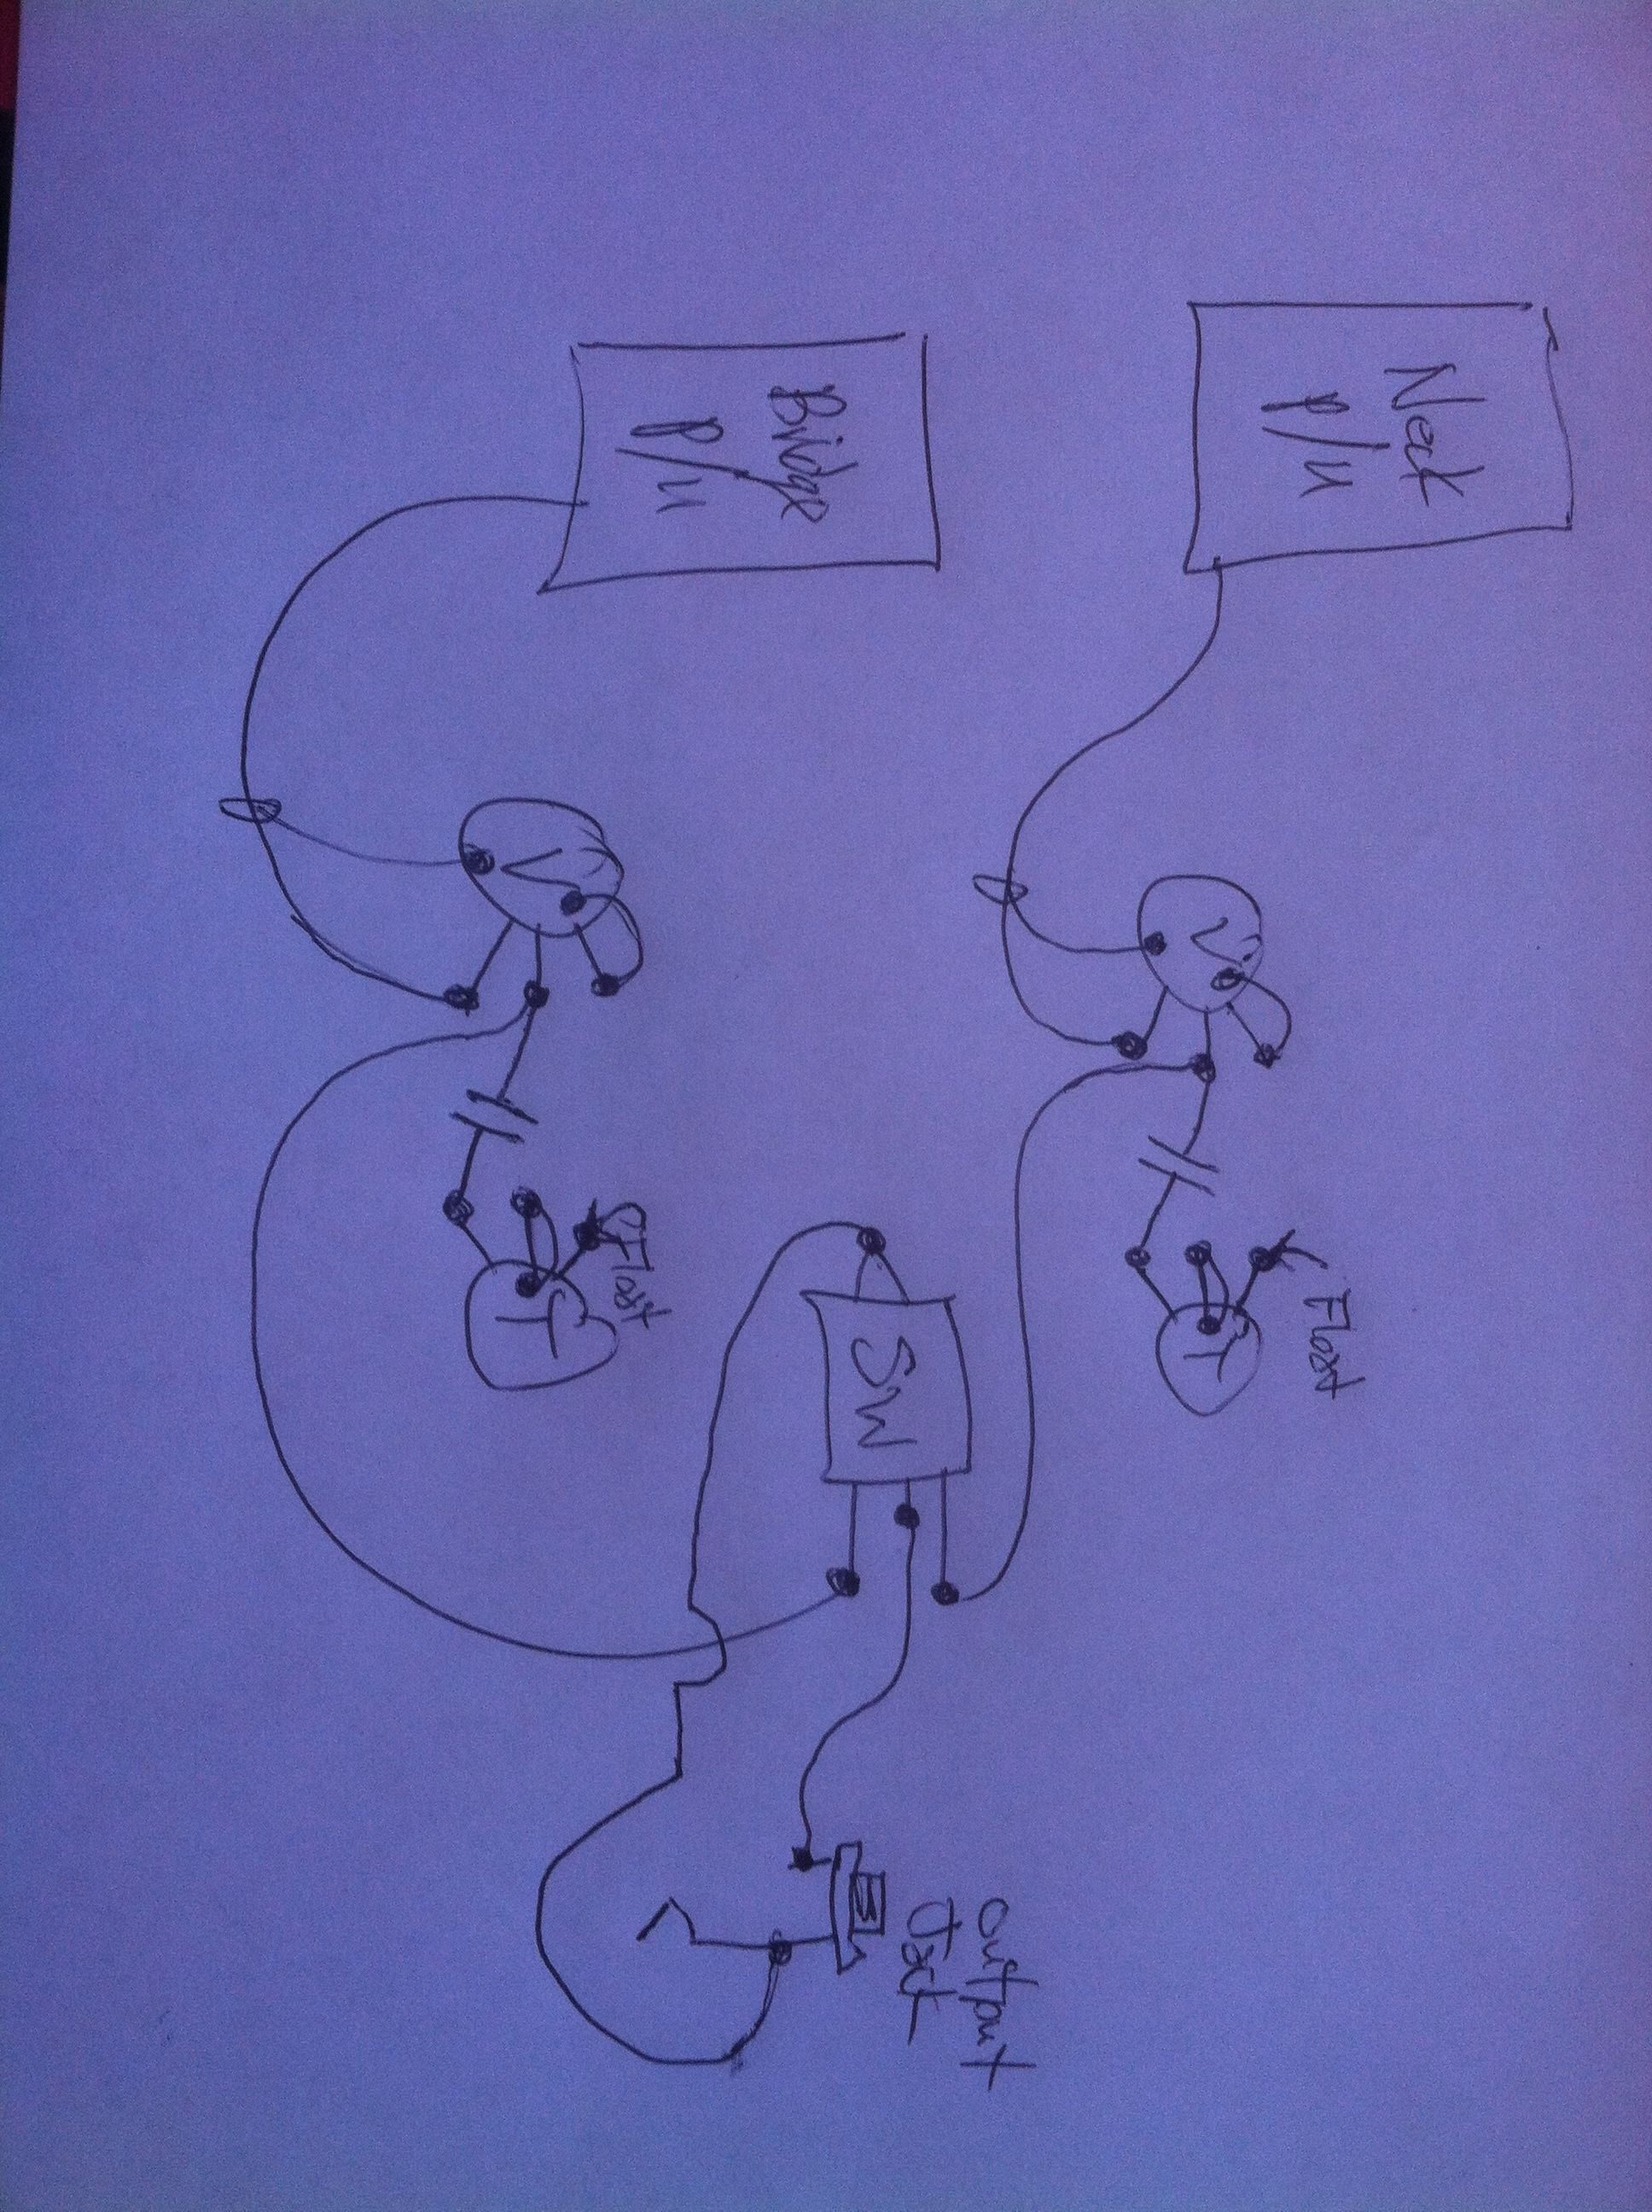 hight resolution of this is the wiring diagram i will work from to wire up this guitar the way gibson did in the 50 s